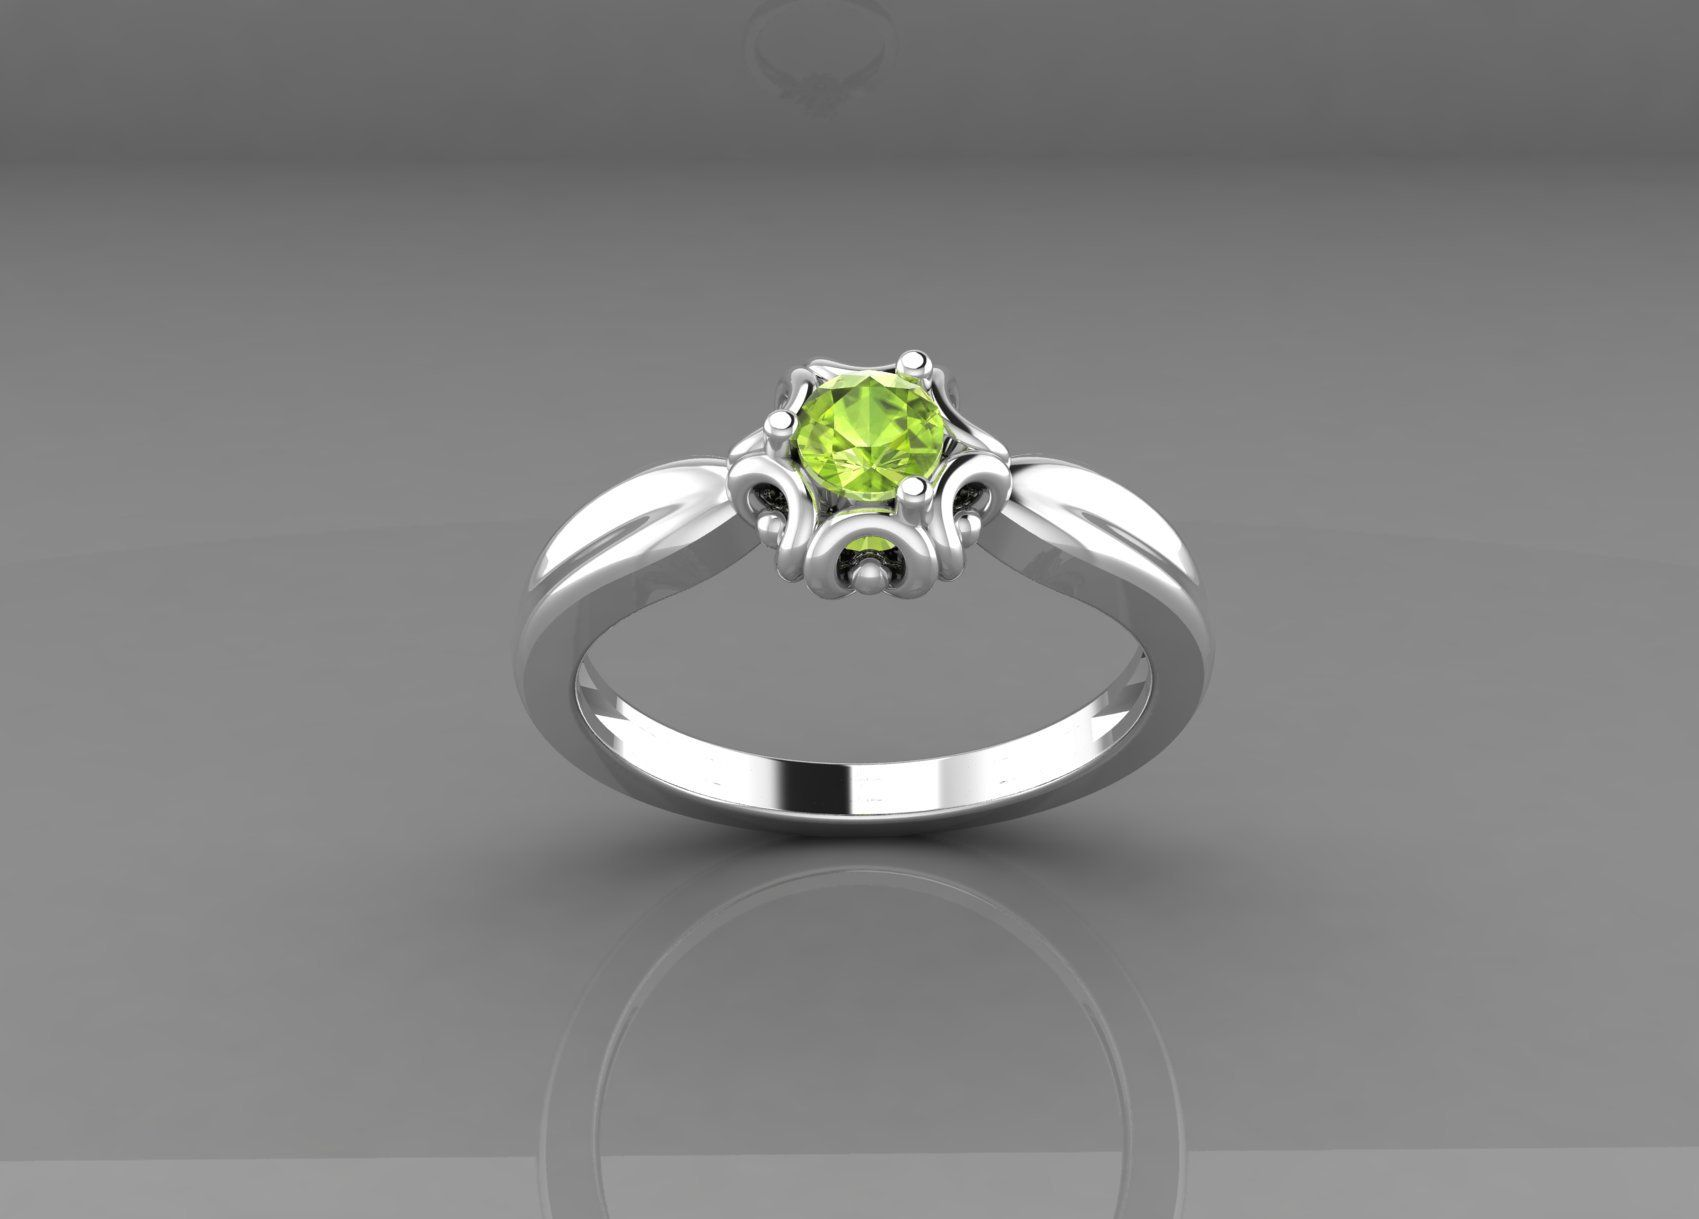 Natural Peridot Silver Girls Ring 925 Sterling Silver Stylish Girls Ring Engagement Ring August Birthstone Ring Round Cut Gemstone Ring